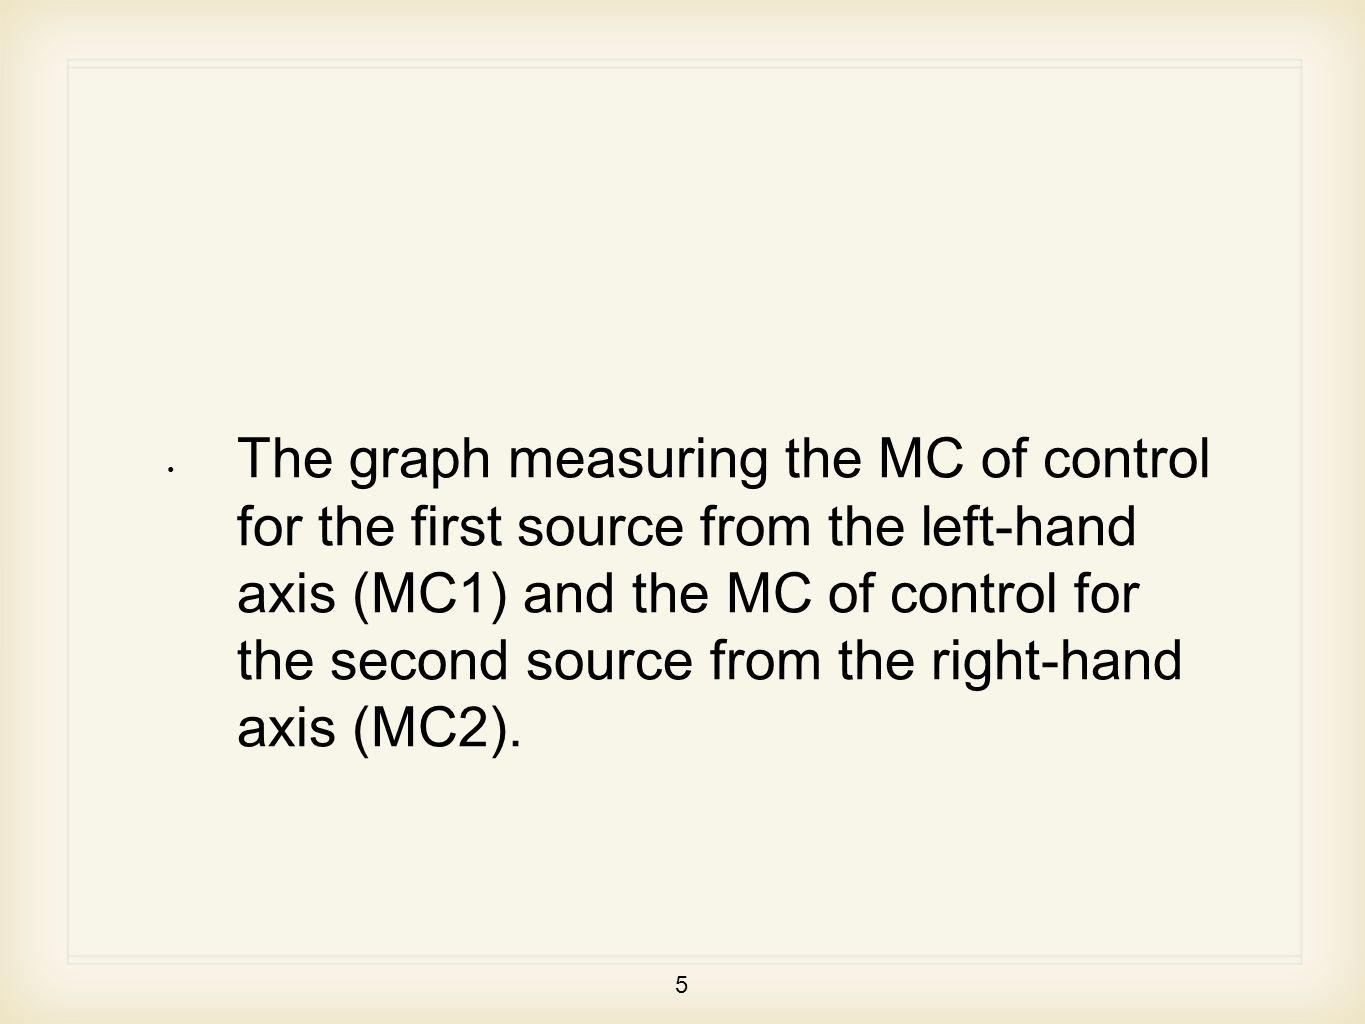 5 The graph measuring the MC of control for the first source from the left-hand axis (MC1) and the MC of control for the second source from the right-hand axis (MC2).